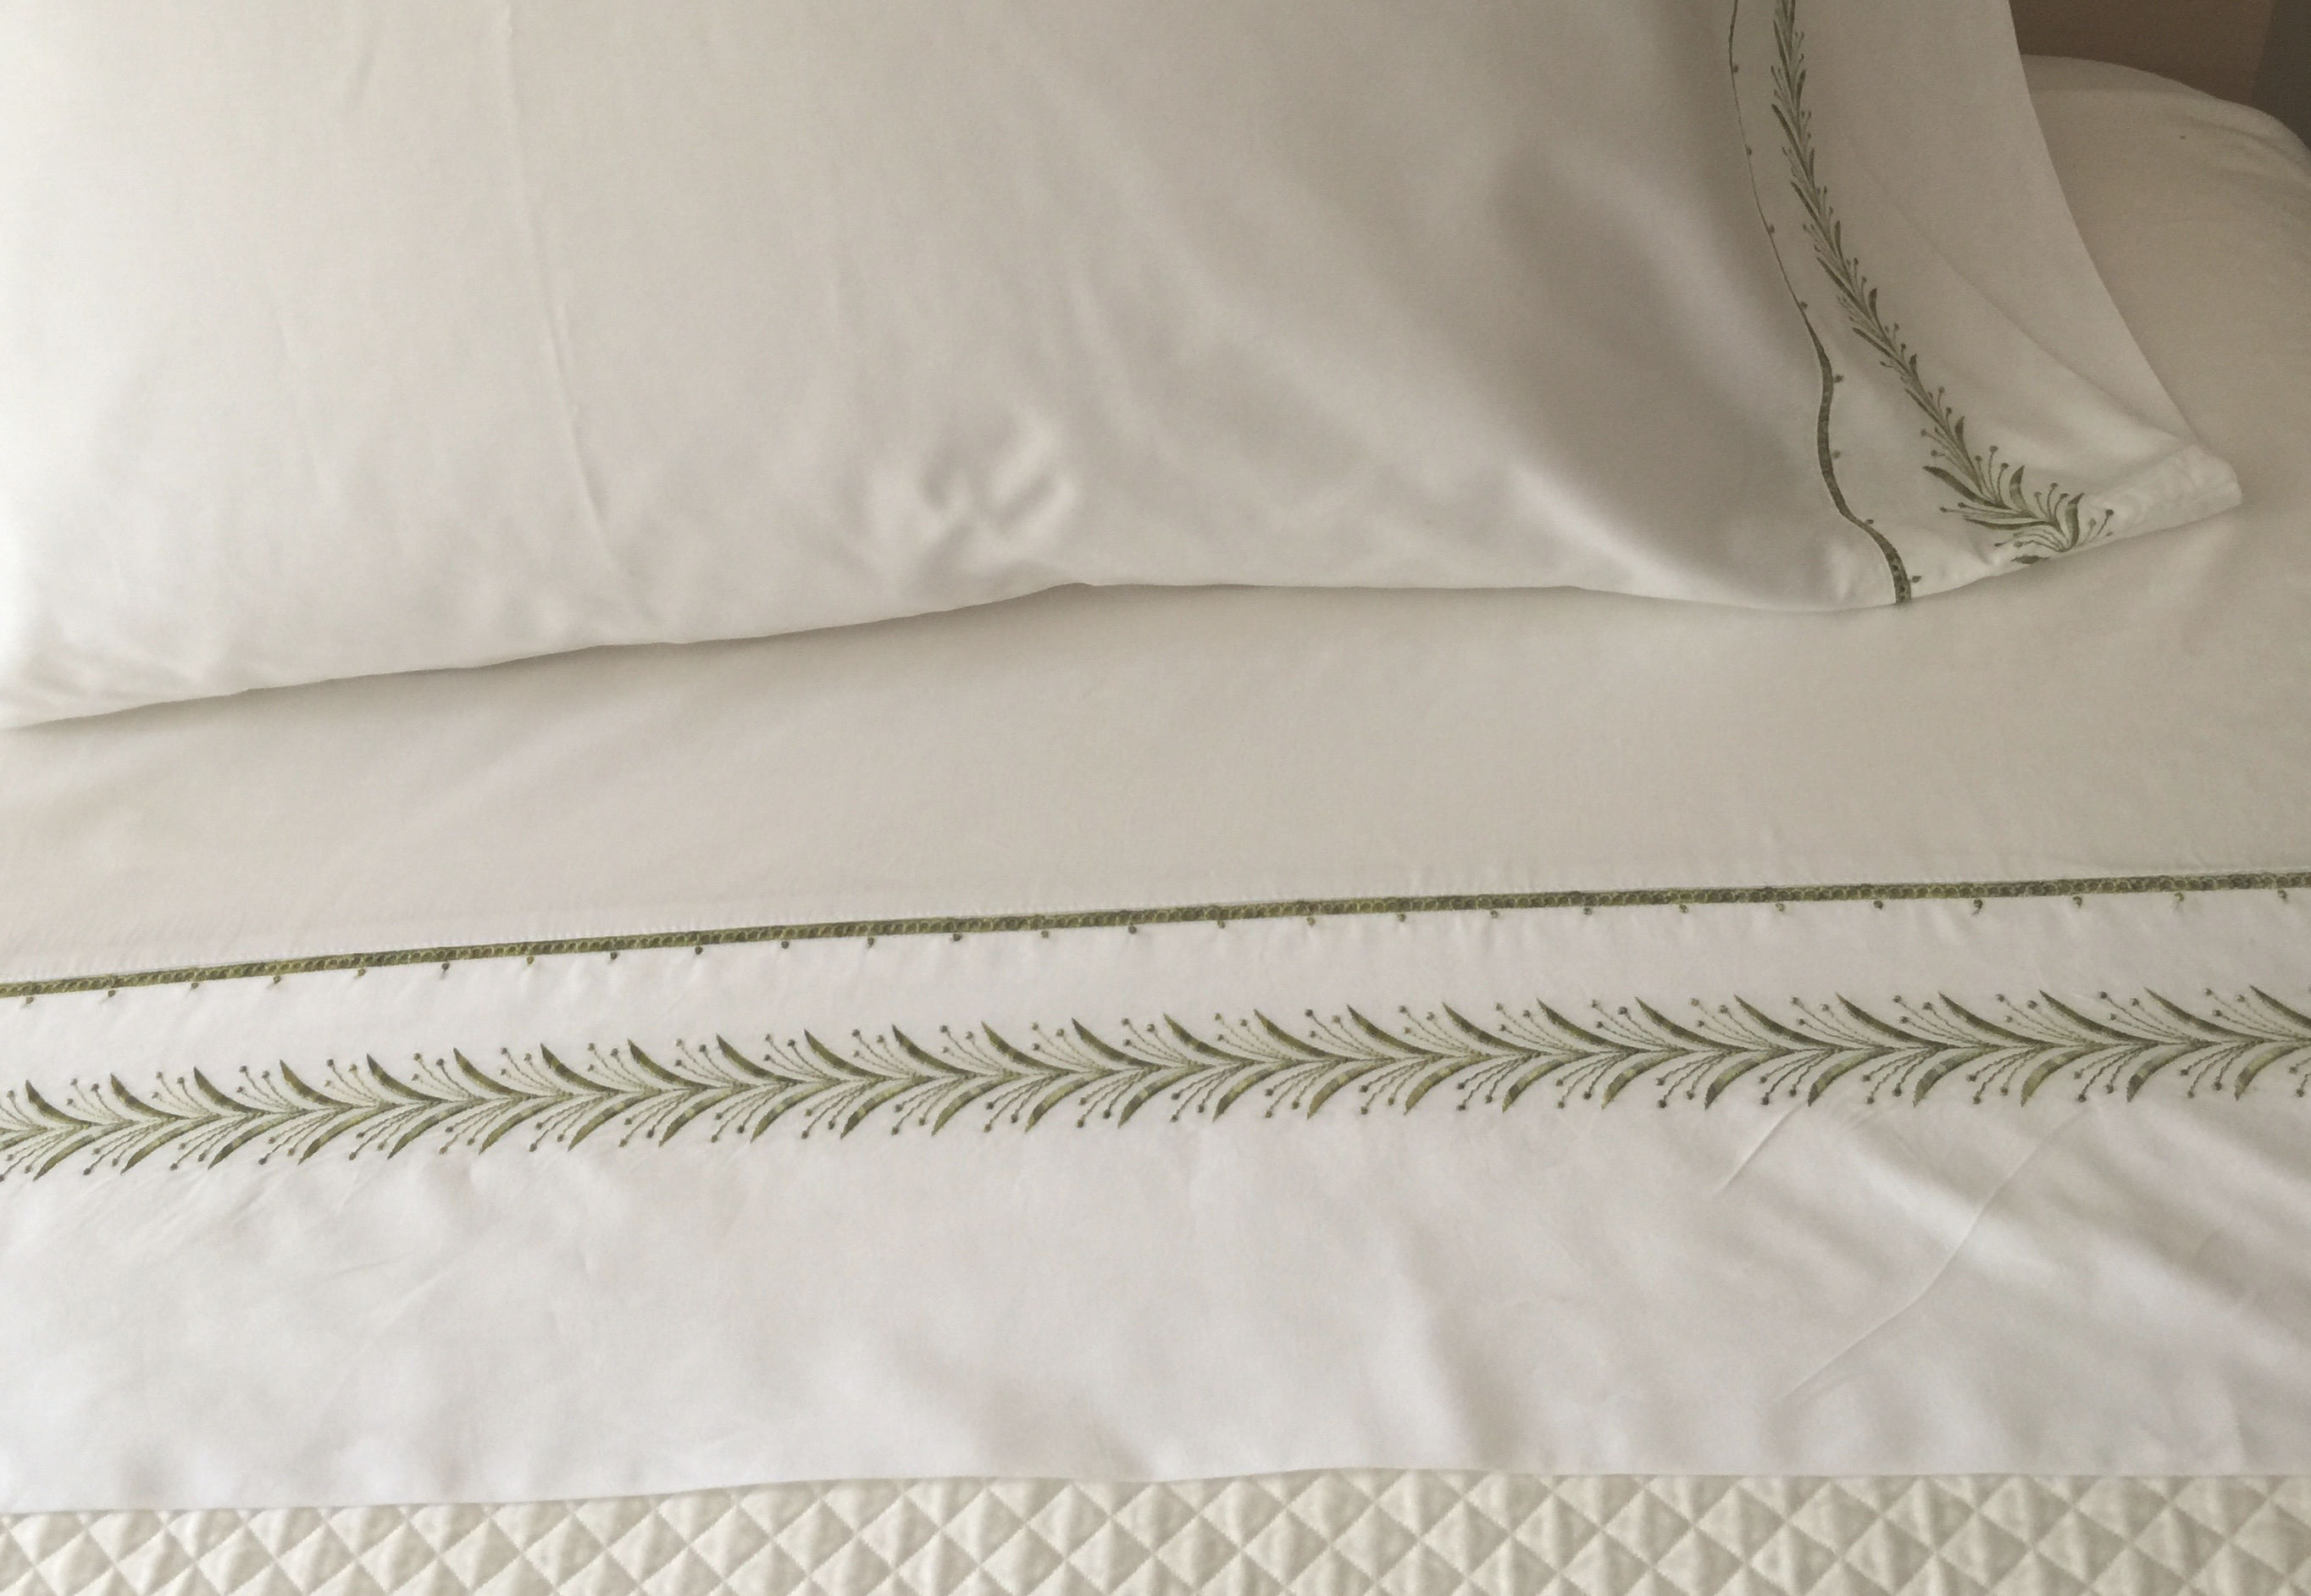 buying bed sheets - perfectlinens.com second skin fern green 400 thread count sateen king bed sheet set look better after washing and ironing - Atticmag